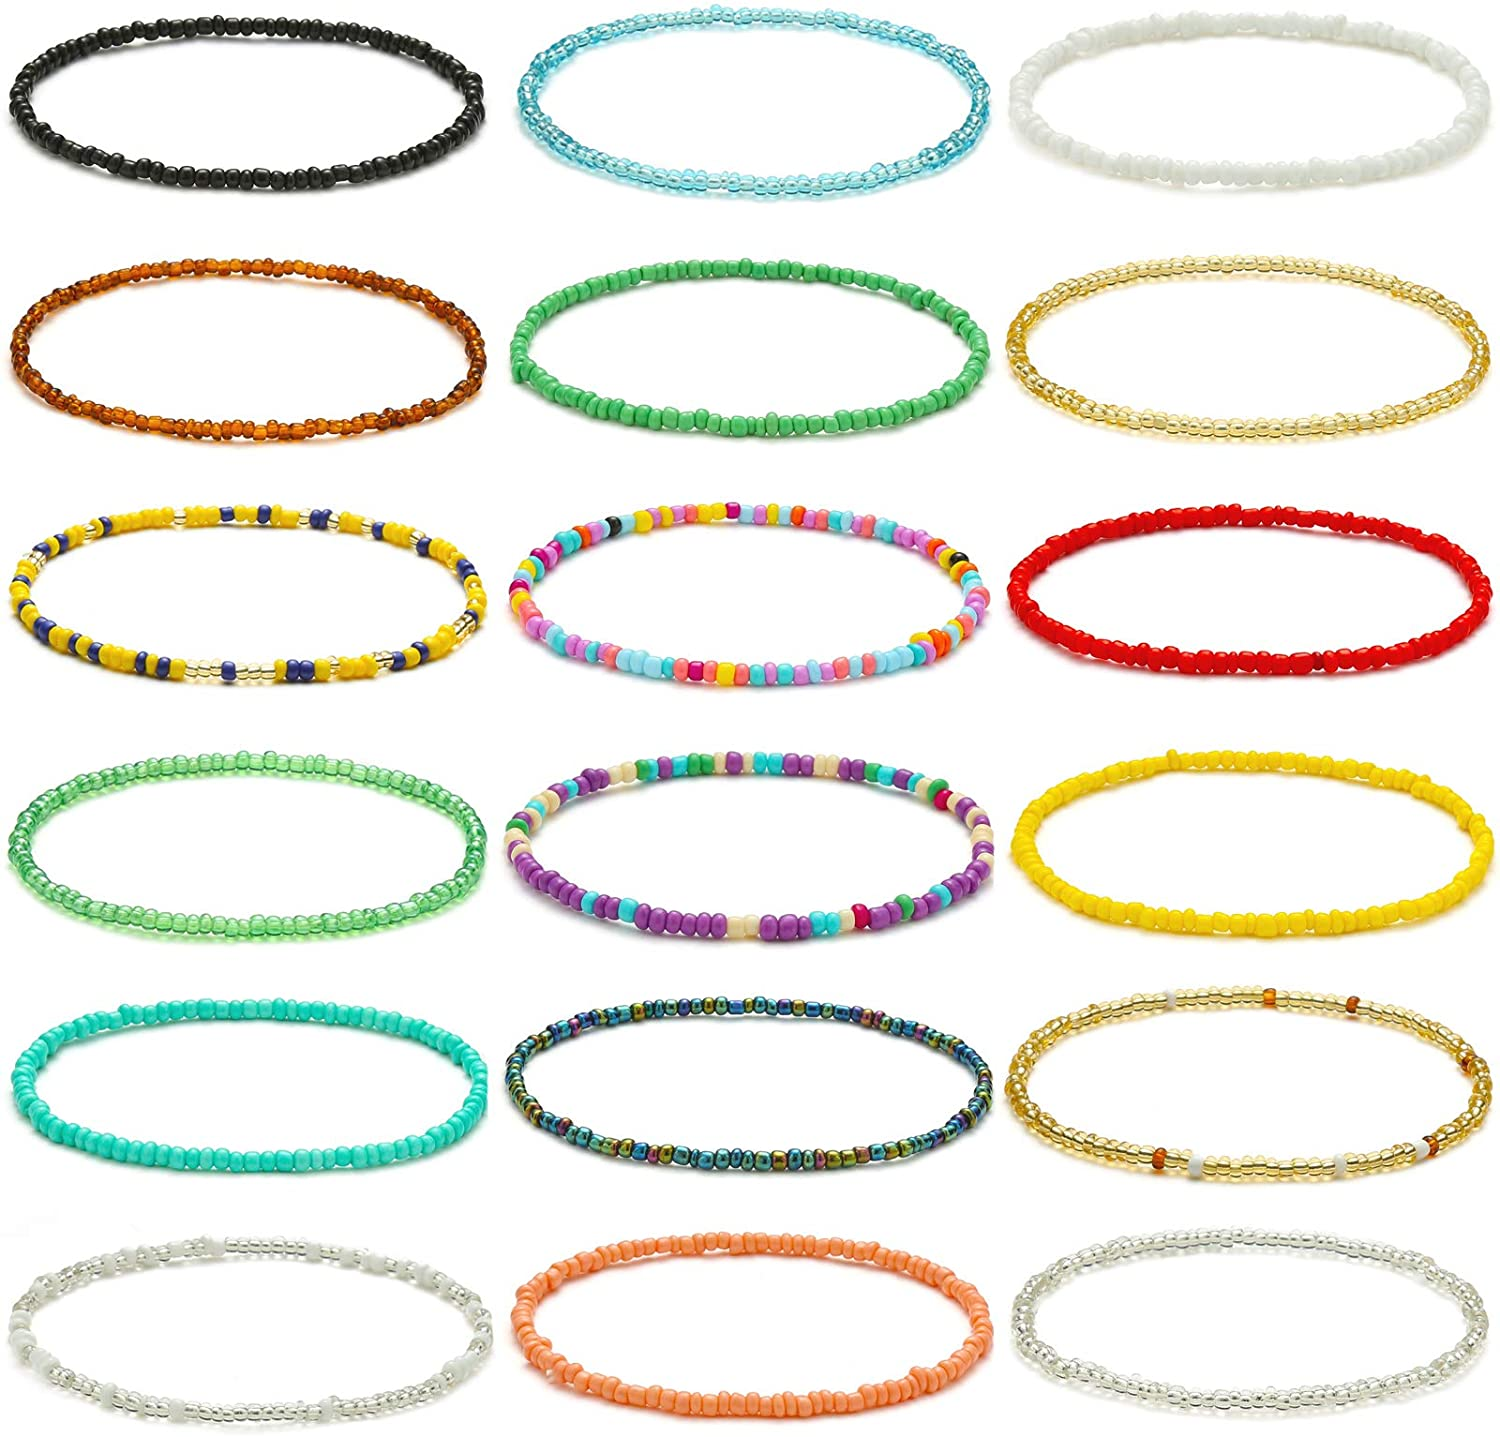 XIJIN 18 Max 55% OFF Pieces Elastic Beaded Anklets Women for Handmade Popular product Girls